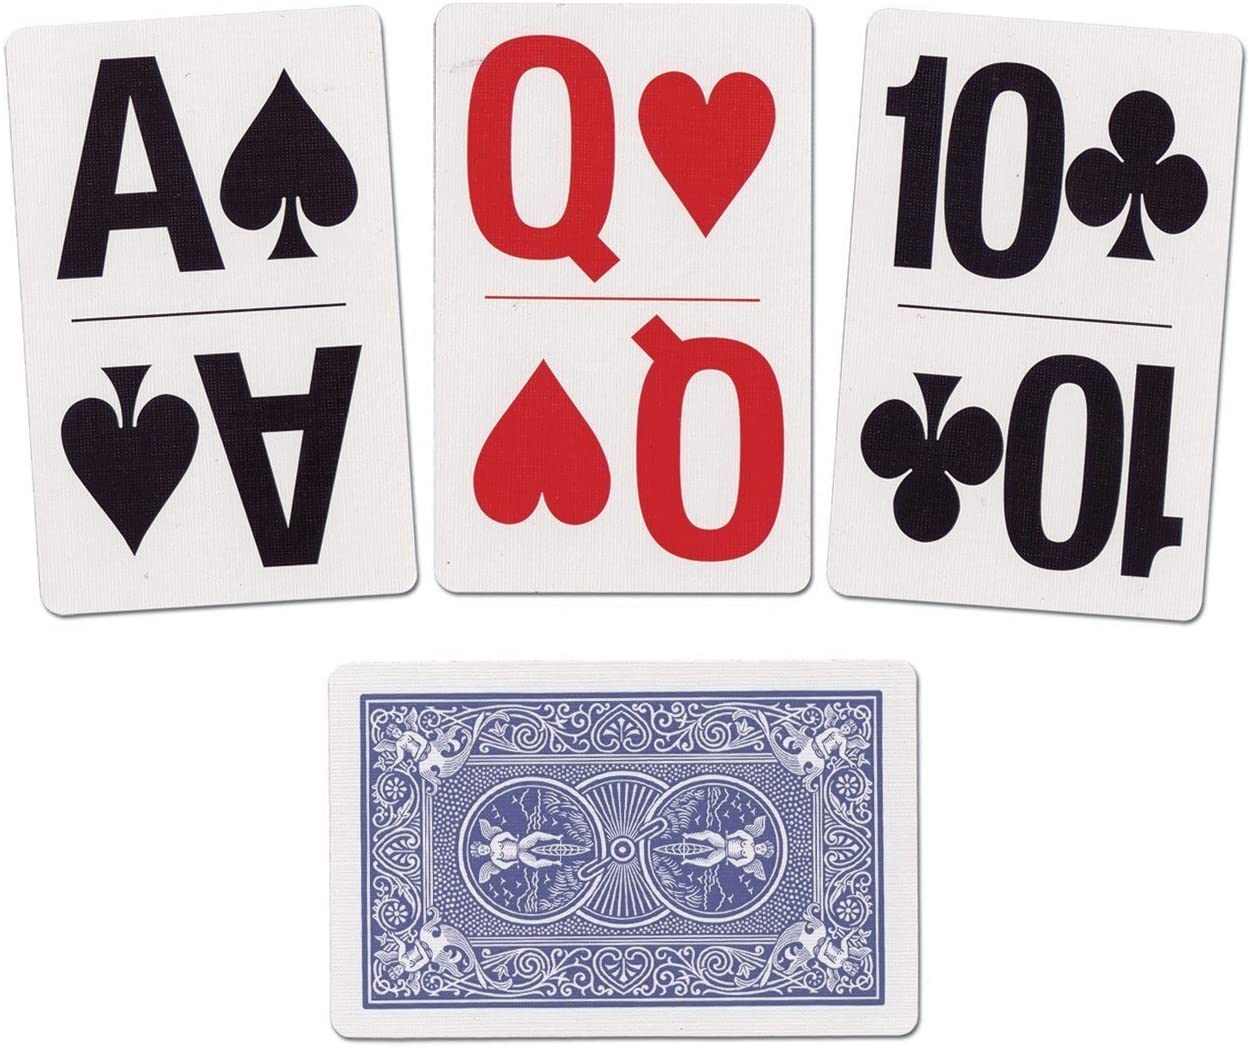 1 Blue Deck Bicycle Bridge Size Large Print Index Easy Viewing Playing Cards